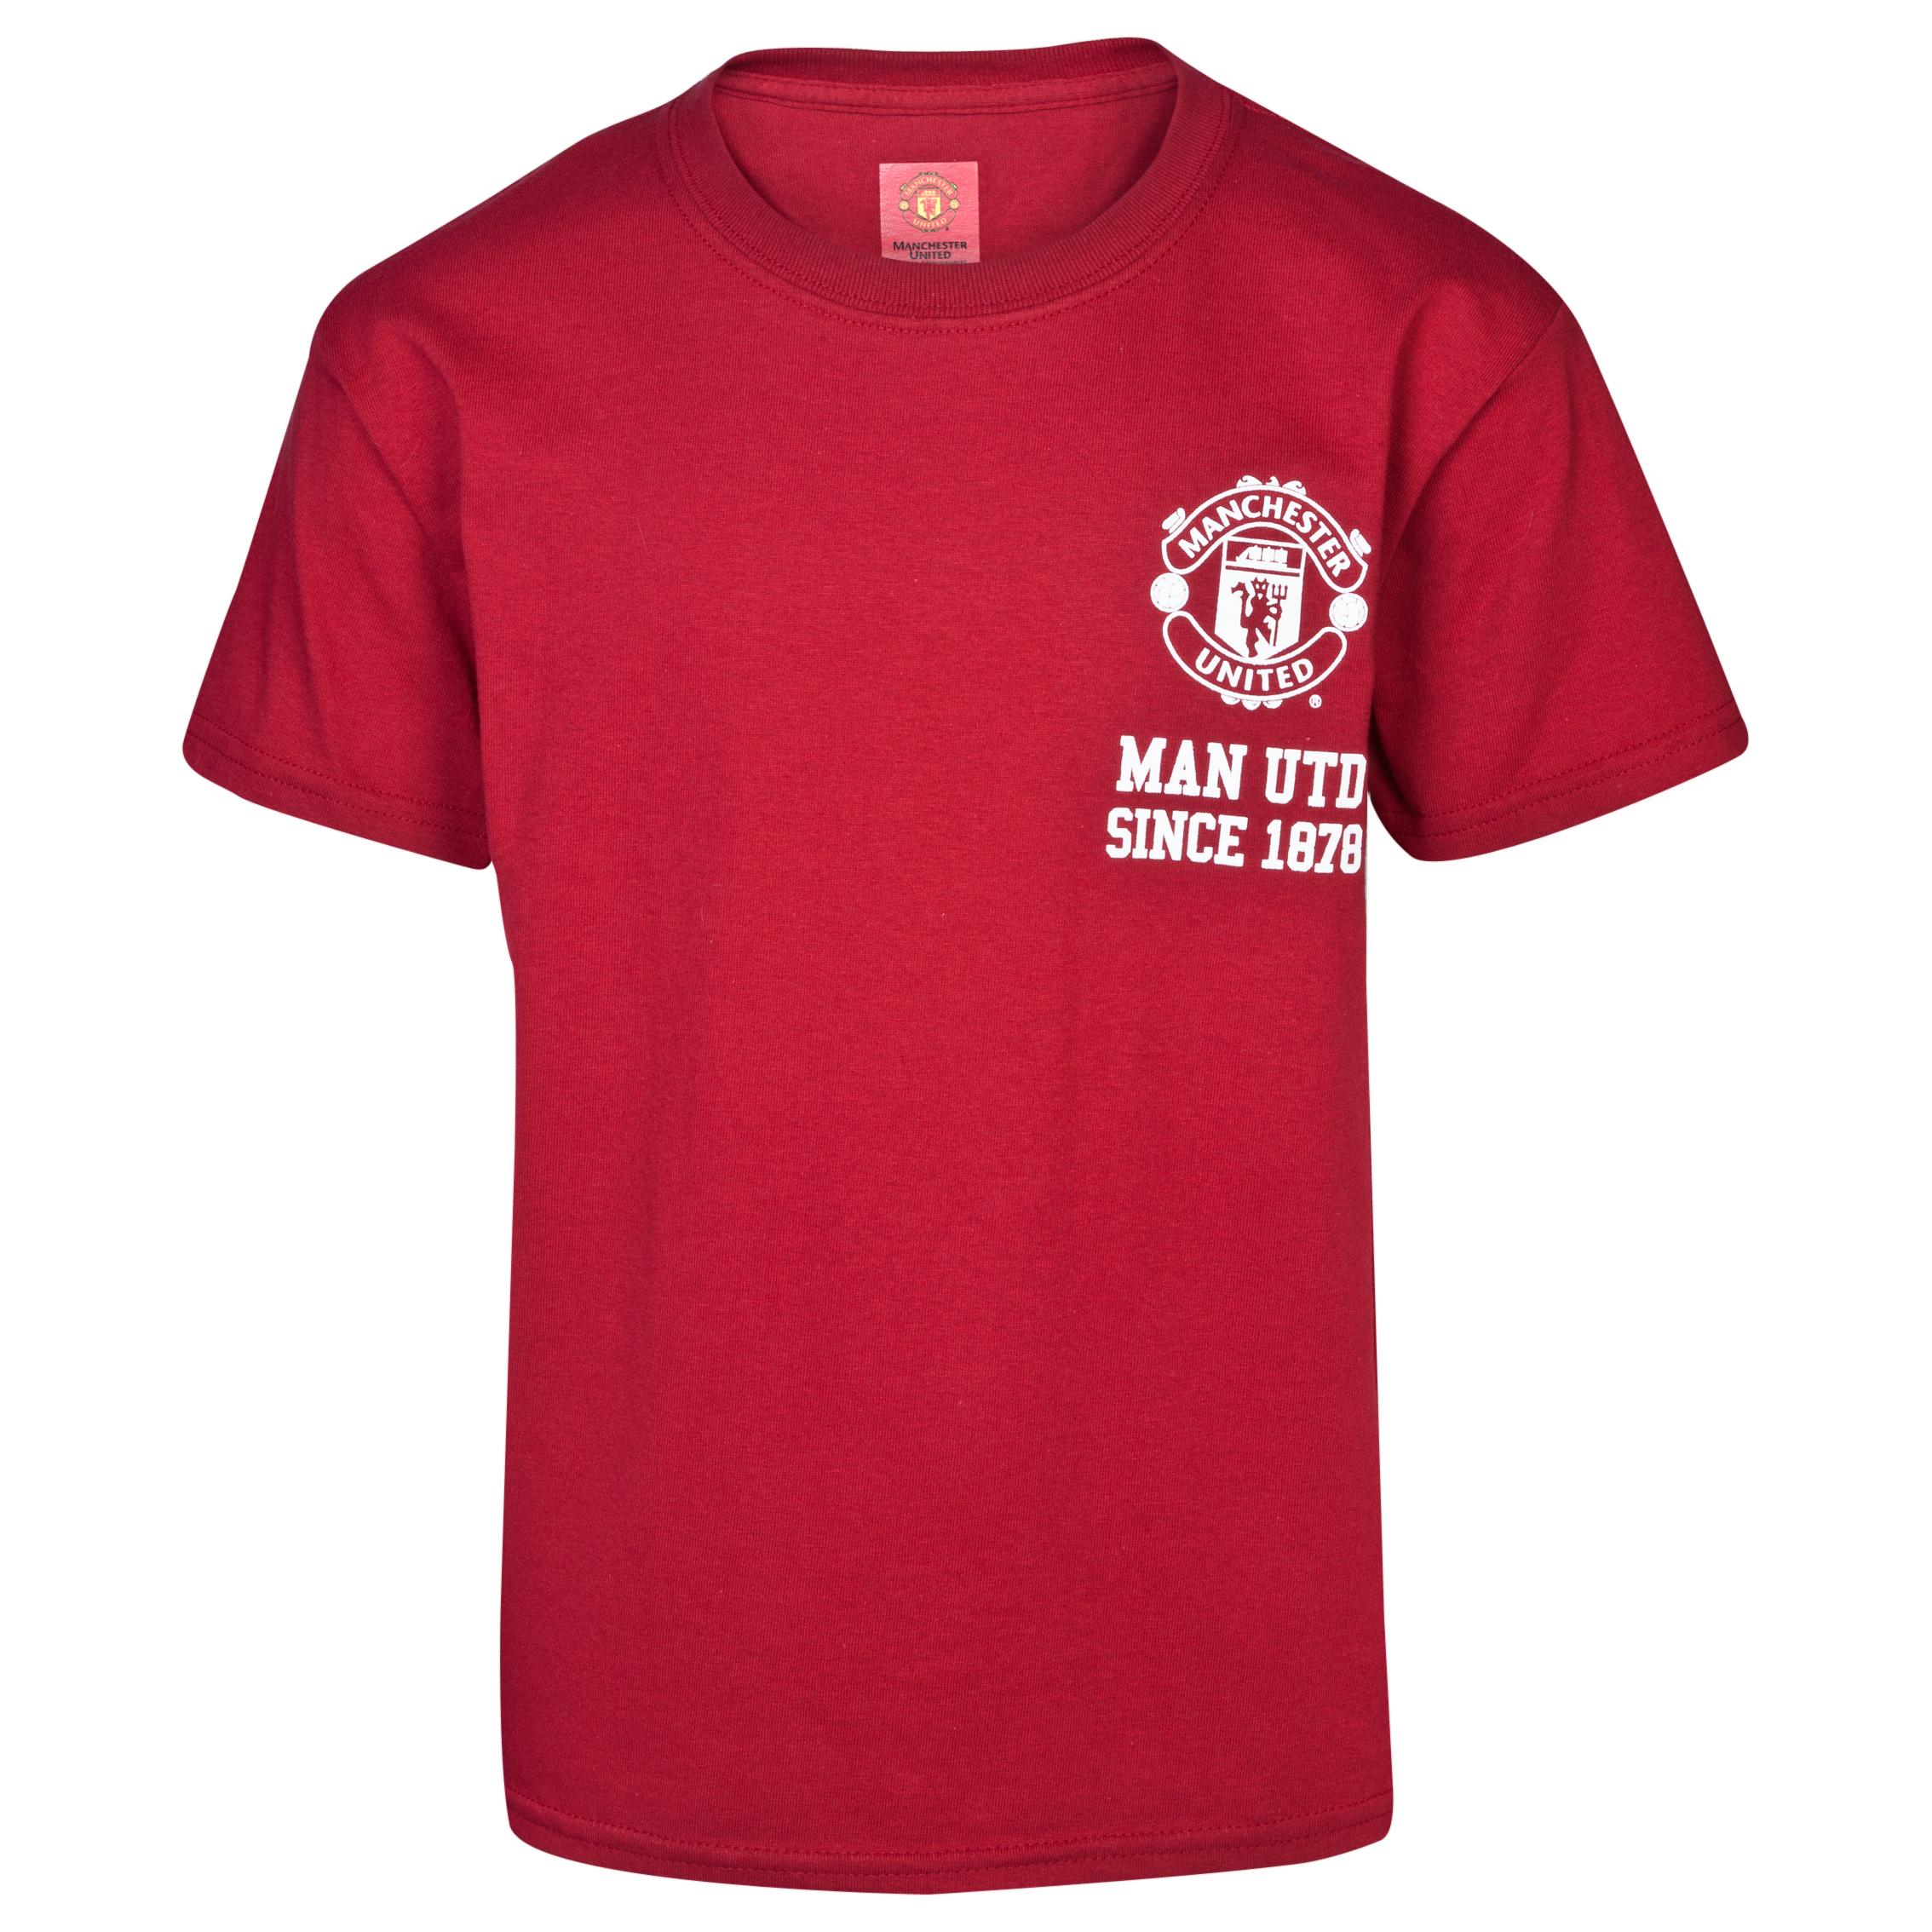 Manchester United Crest T-Shirt - Boys Red